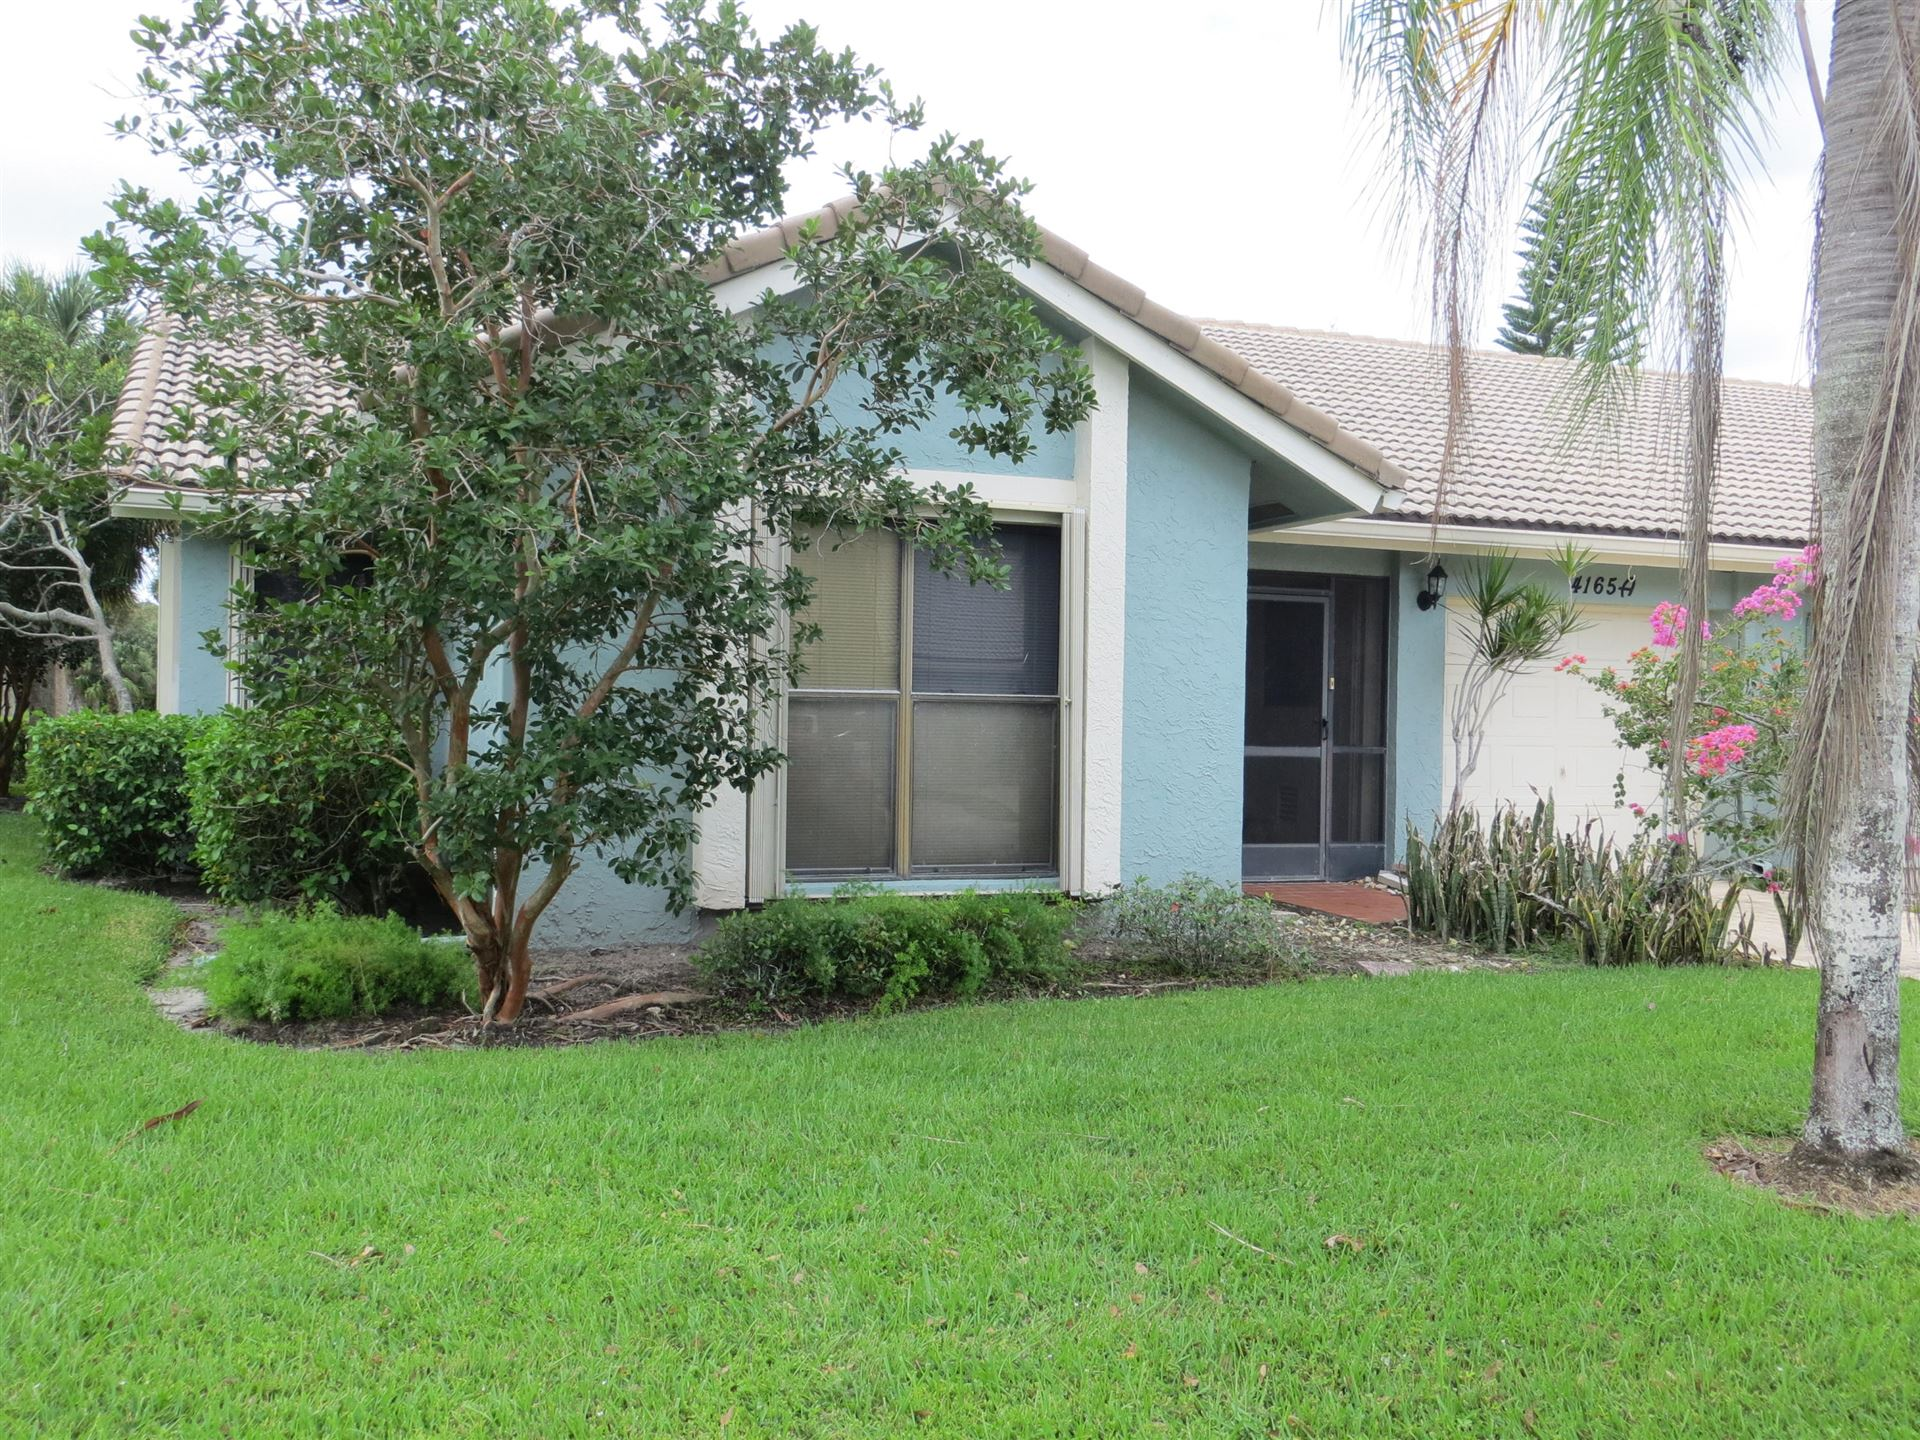 4165 Gator Trace Villas Circle #A, Fort Pierce, FL 34982 - #: RX-10668575